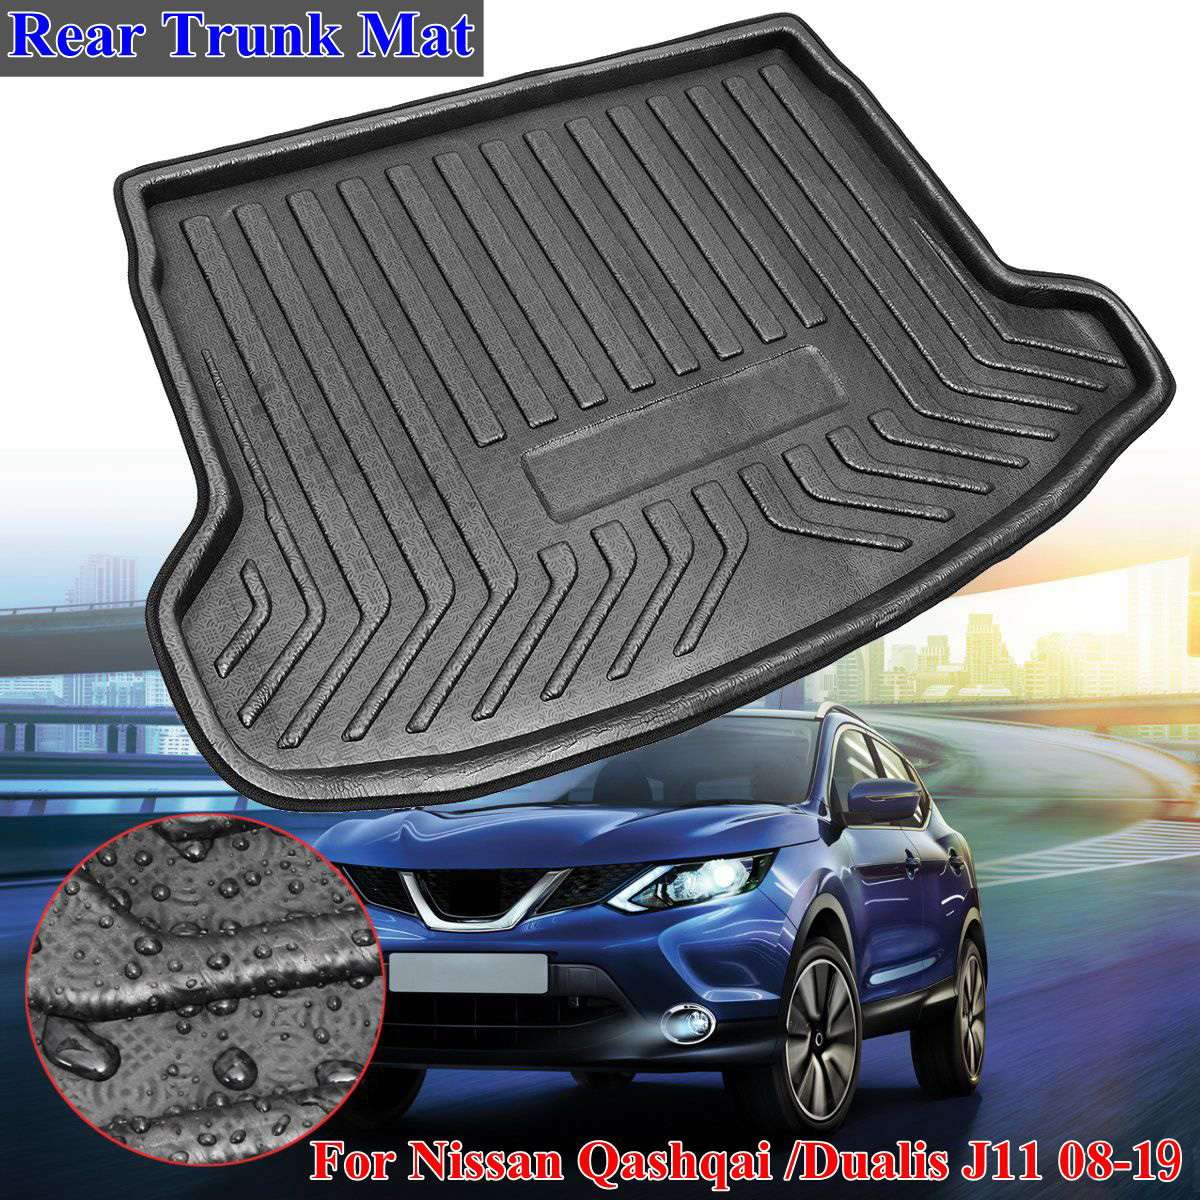 Tray Boot Liner Cargo Rear Trunk Cargo Mat Floor Carpet Mud Kick For Nissan Qashqai Dualis J11 2008-2015 2016 2017 2018 2019